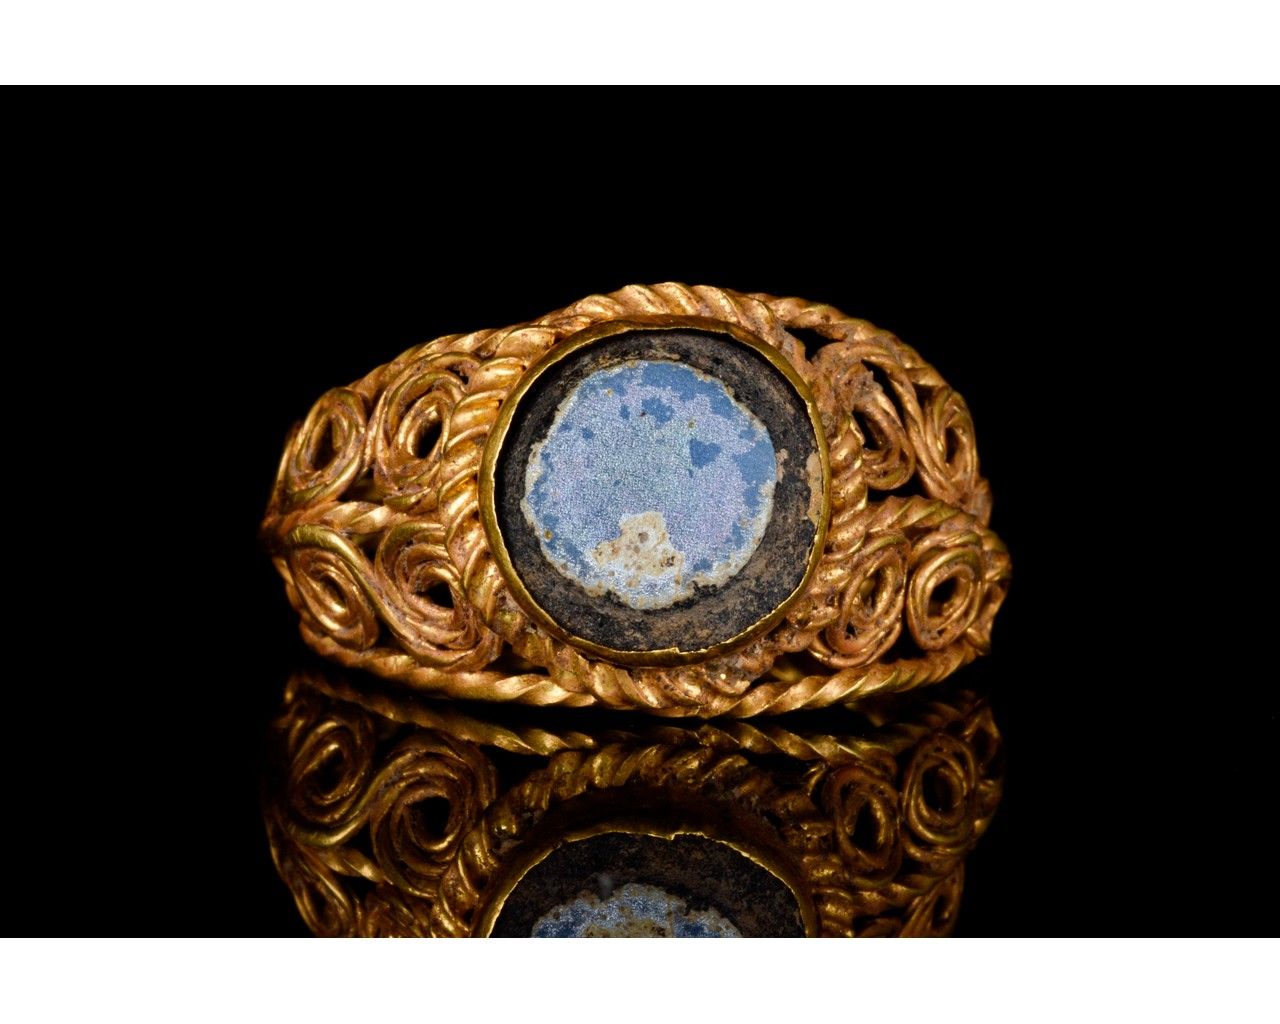 LATE ROMAN GOLD AND GLASS RING - EX CHRISTIES - FULL ANALYSIS - Image 2 of 8